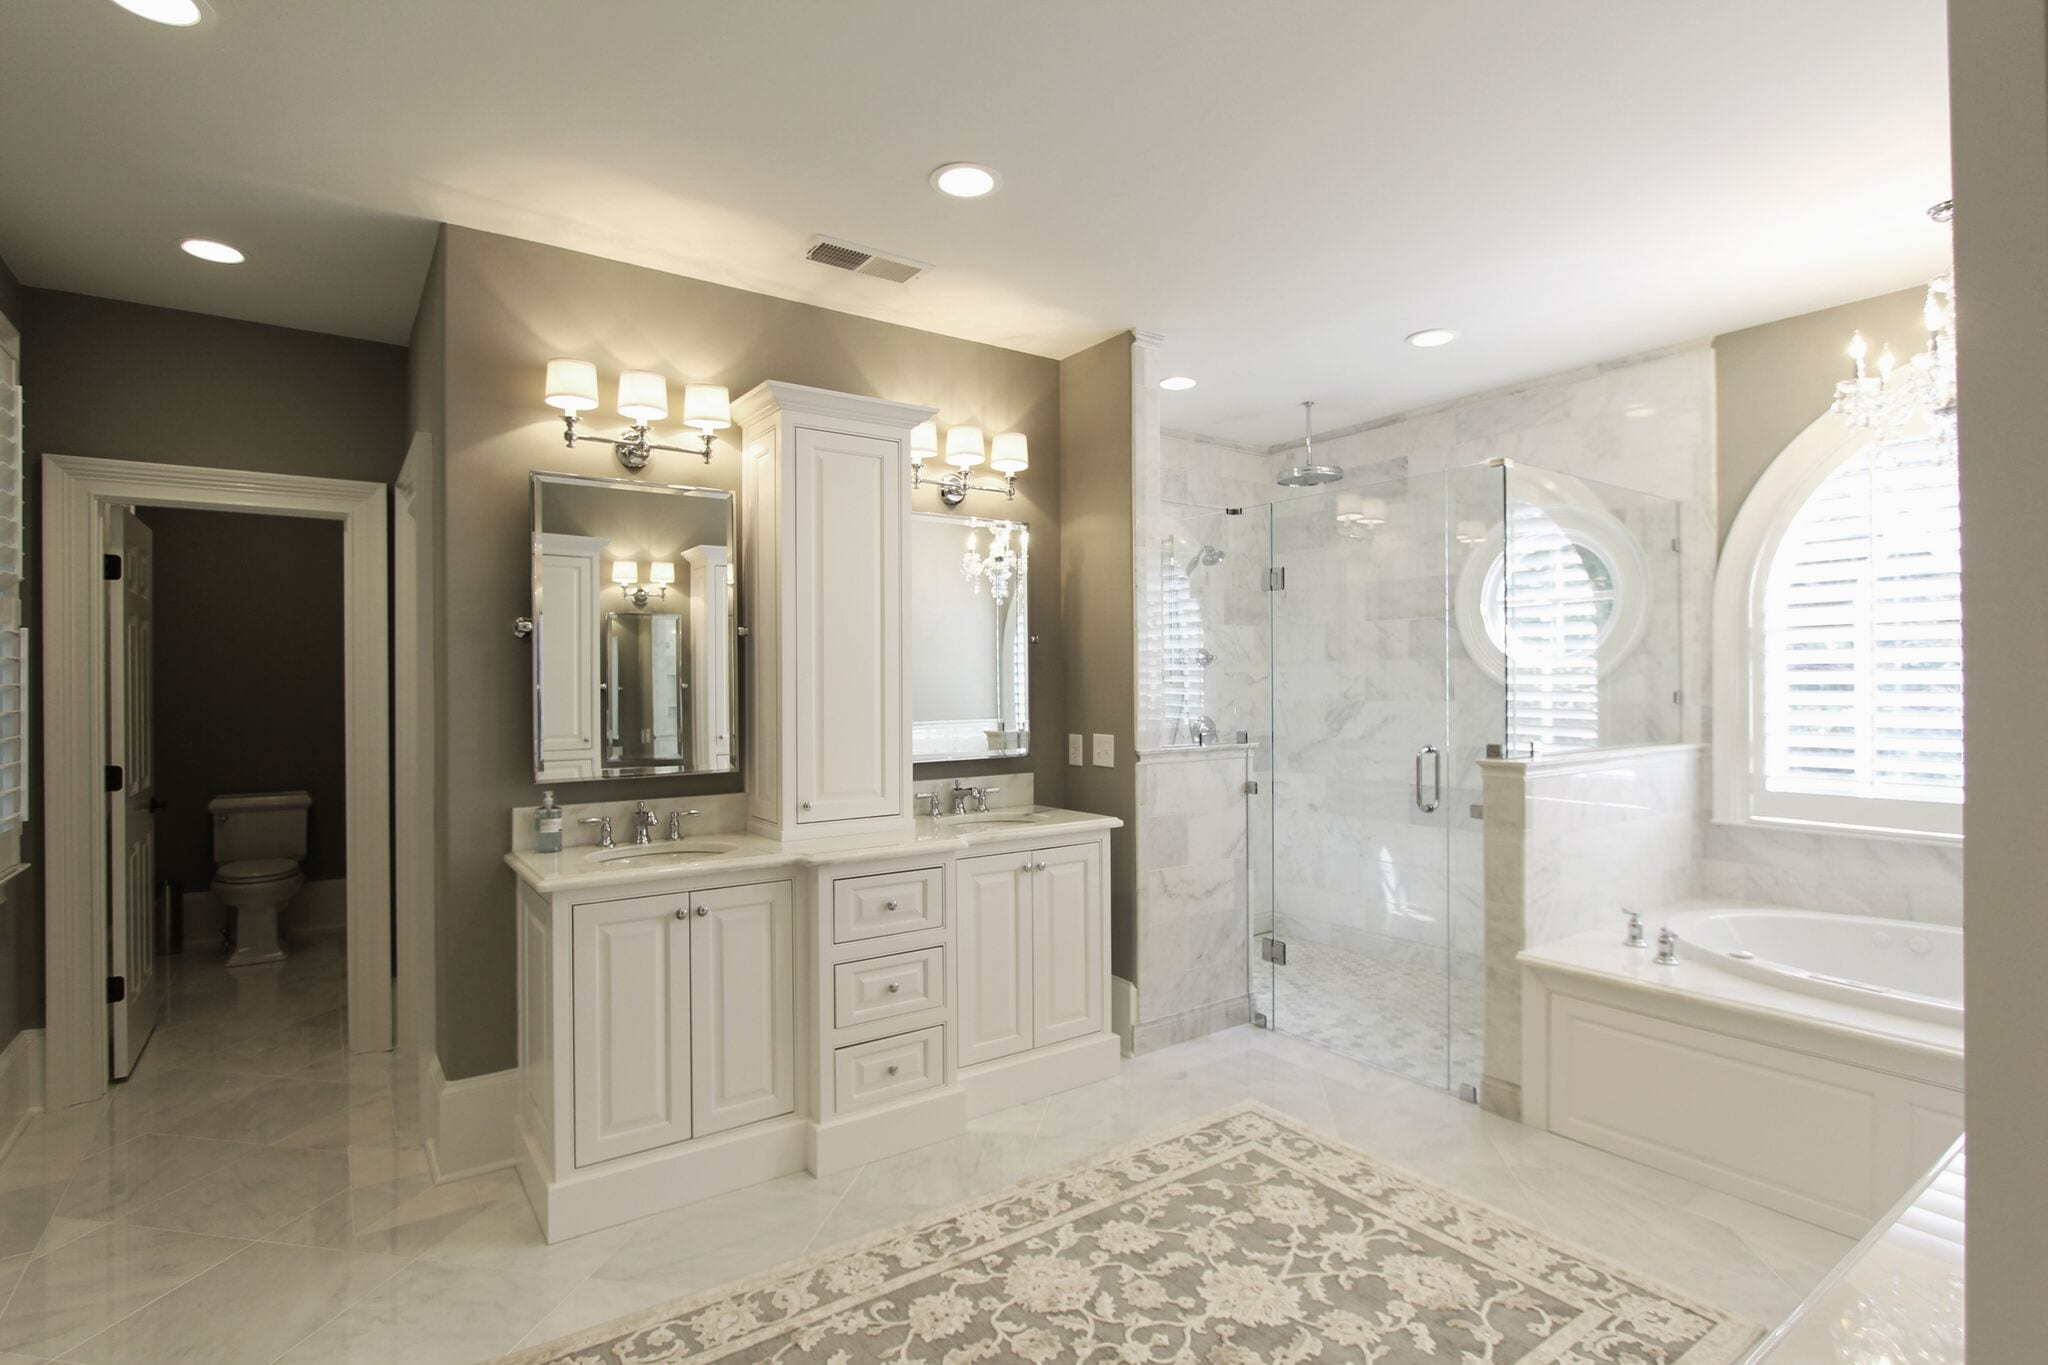 Inset Double Sink Vanity With Center Tower Luxury